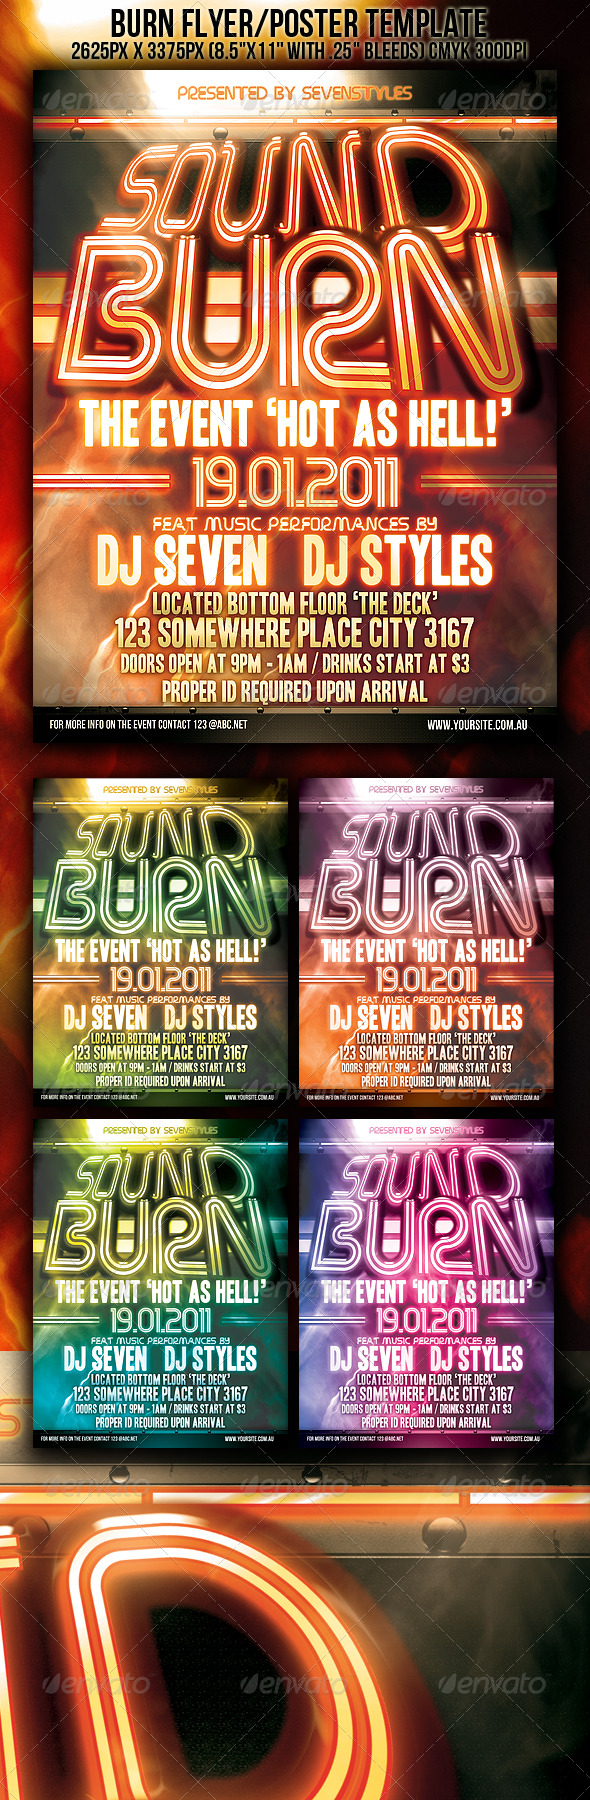 Sound Burn Flyer/Poster Template - Clubs & Parties Events